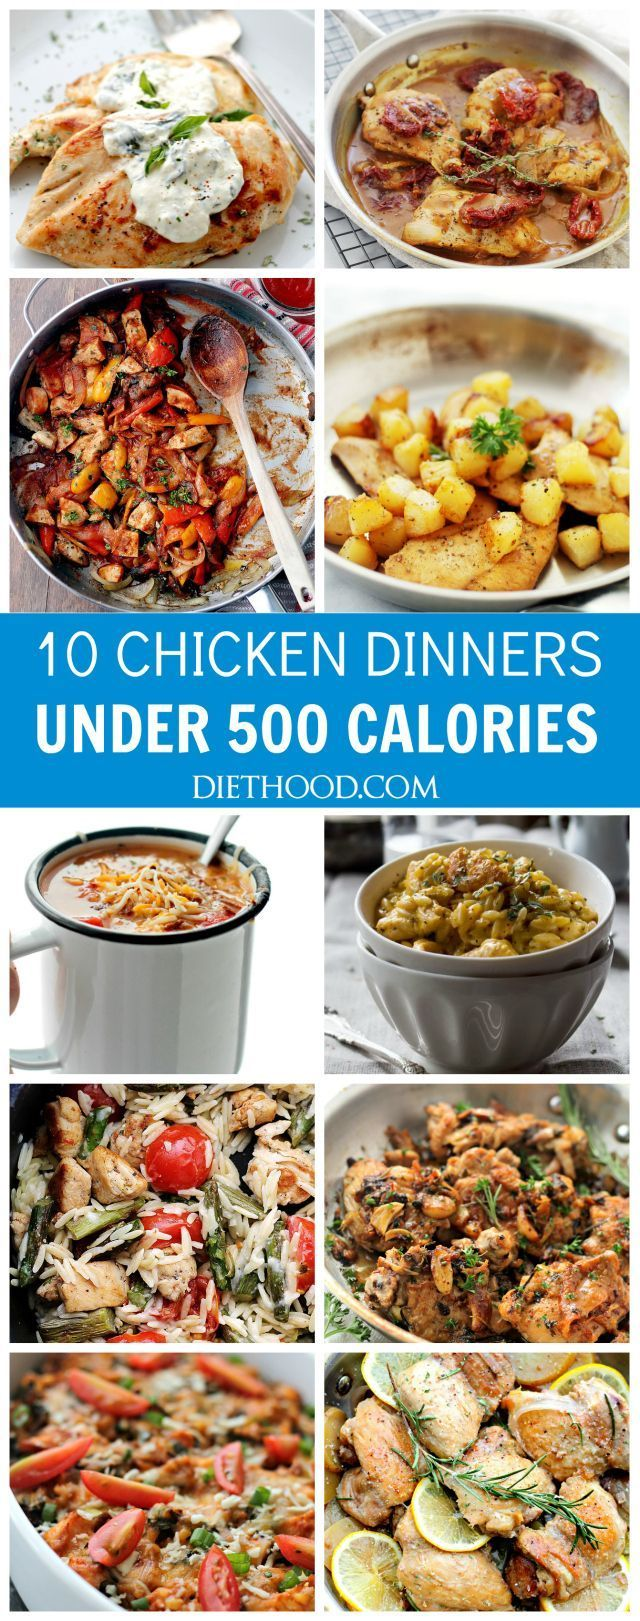 Ten Chicken Dinners Under 500 Calories | www.diethood.com | These delicious and satisfying Chicken Dinners are all under 500 calories! You dont have to give up on taste to stay on track with your healthy eating goals.